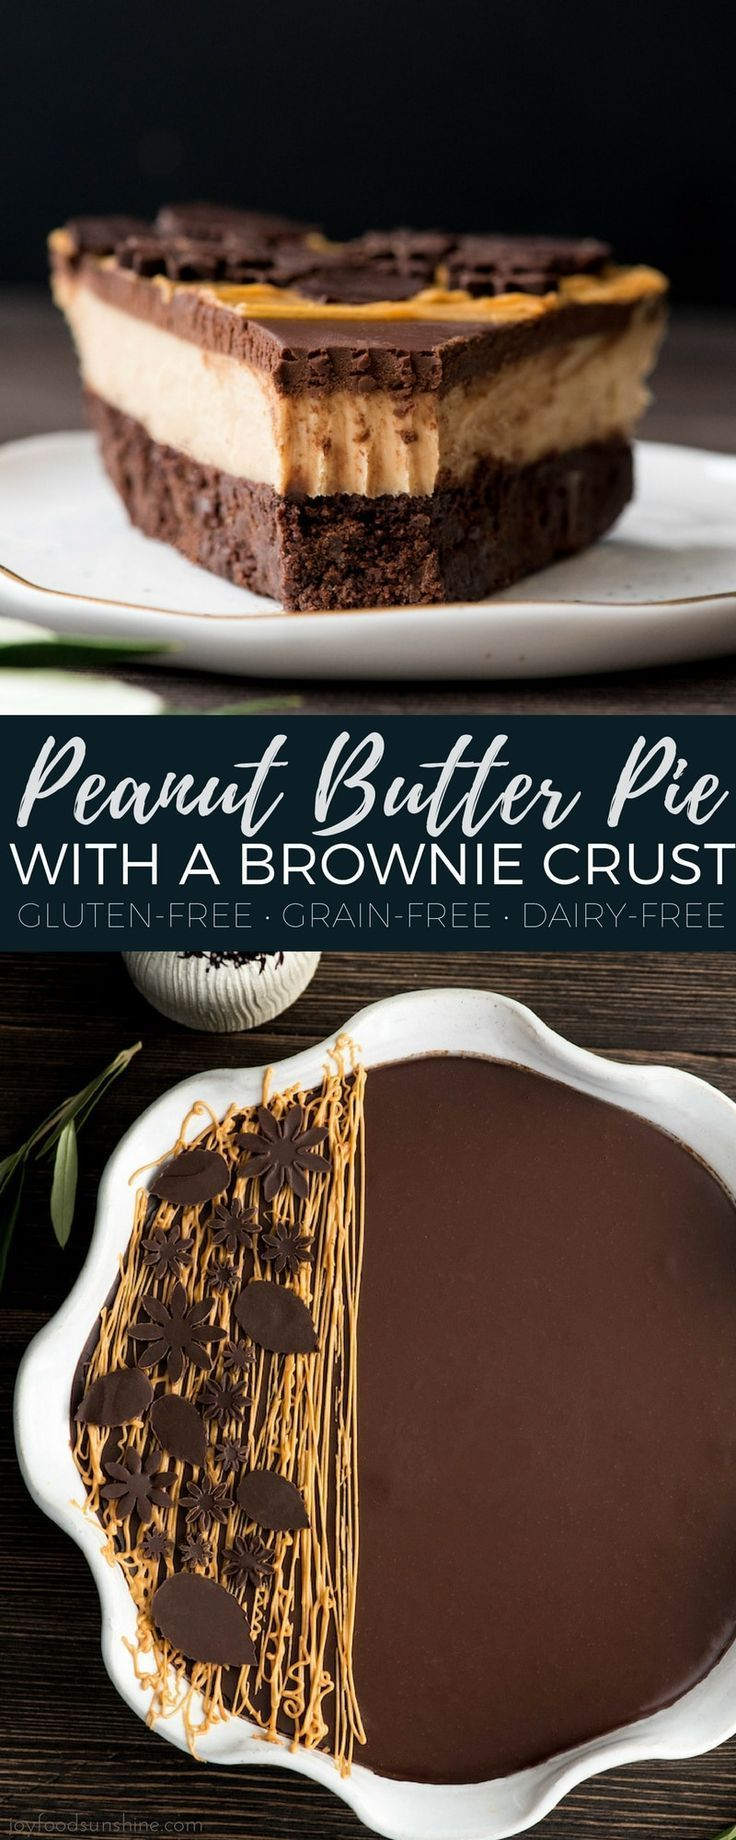 Peanut Butter Pie with a Brownie Crust is everything a dessert should be {and mo... -